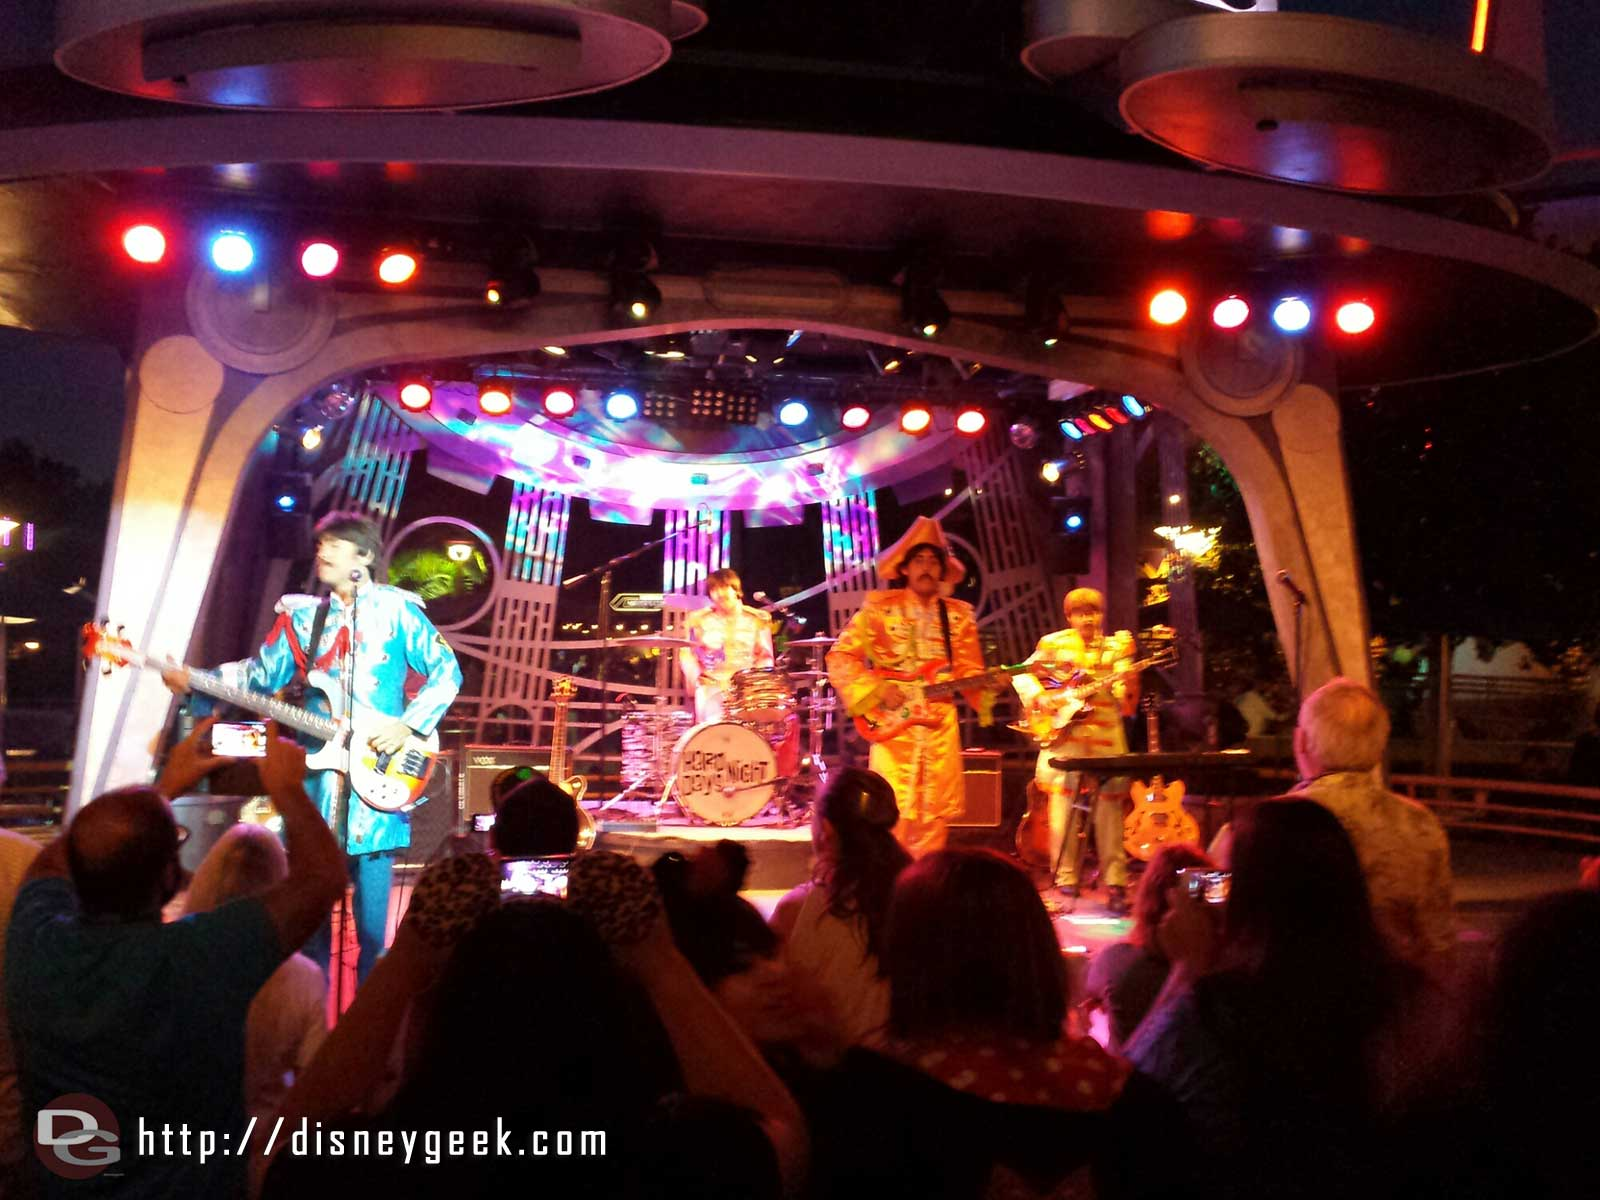 Hard Days Night performing at Tomorrowland Terrace tonight